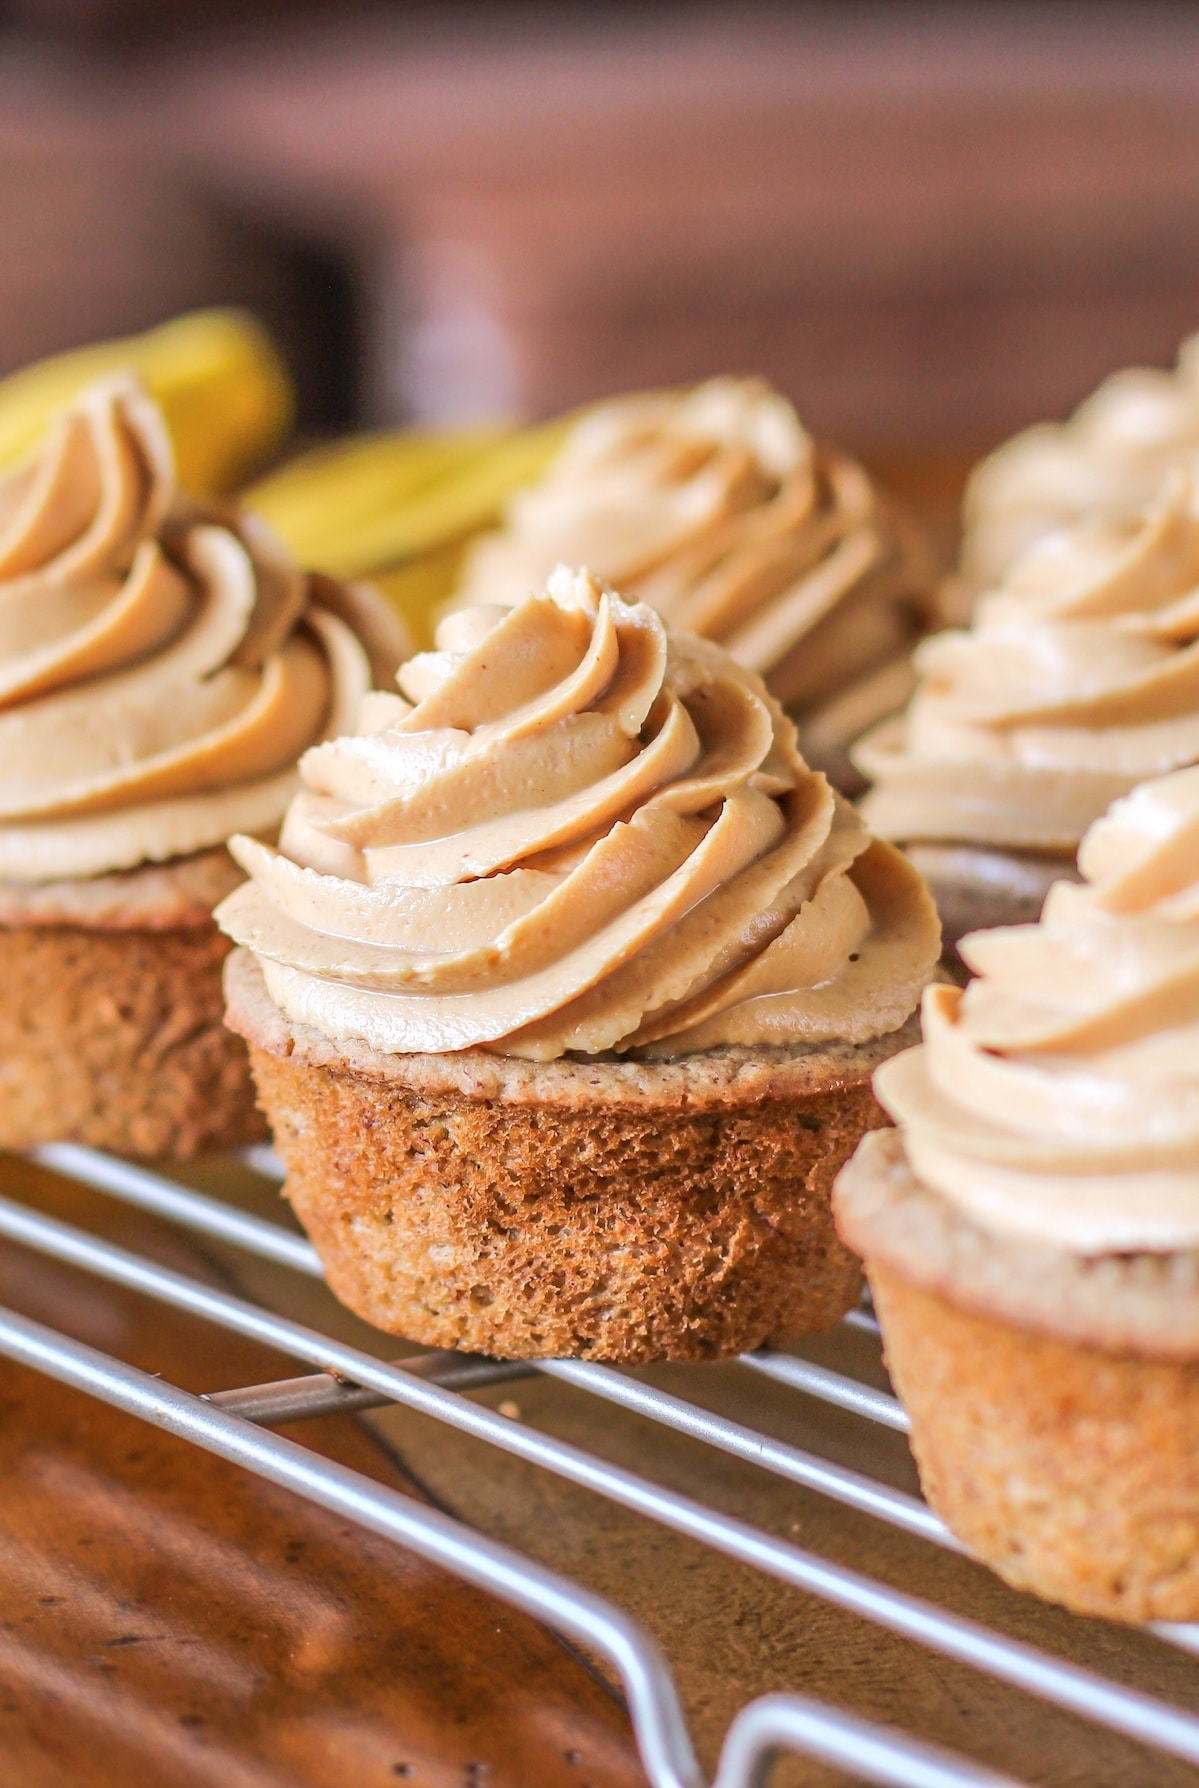 Blogger Business Goals: From Student to Blogger to Author to... what's next? Here are the Banana Cupcakes with Peanut Butter Frosting from the Naughty or Nice Cookbook: The ULTIMATE Healthy Dessert Cookbook!